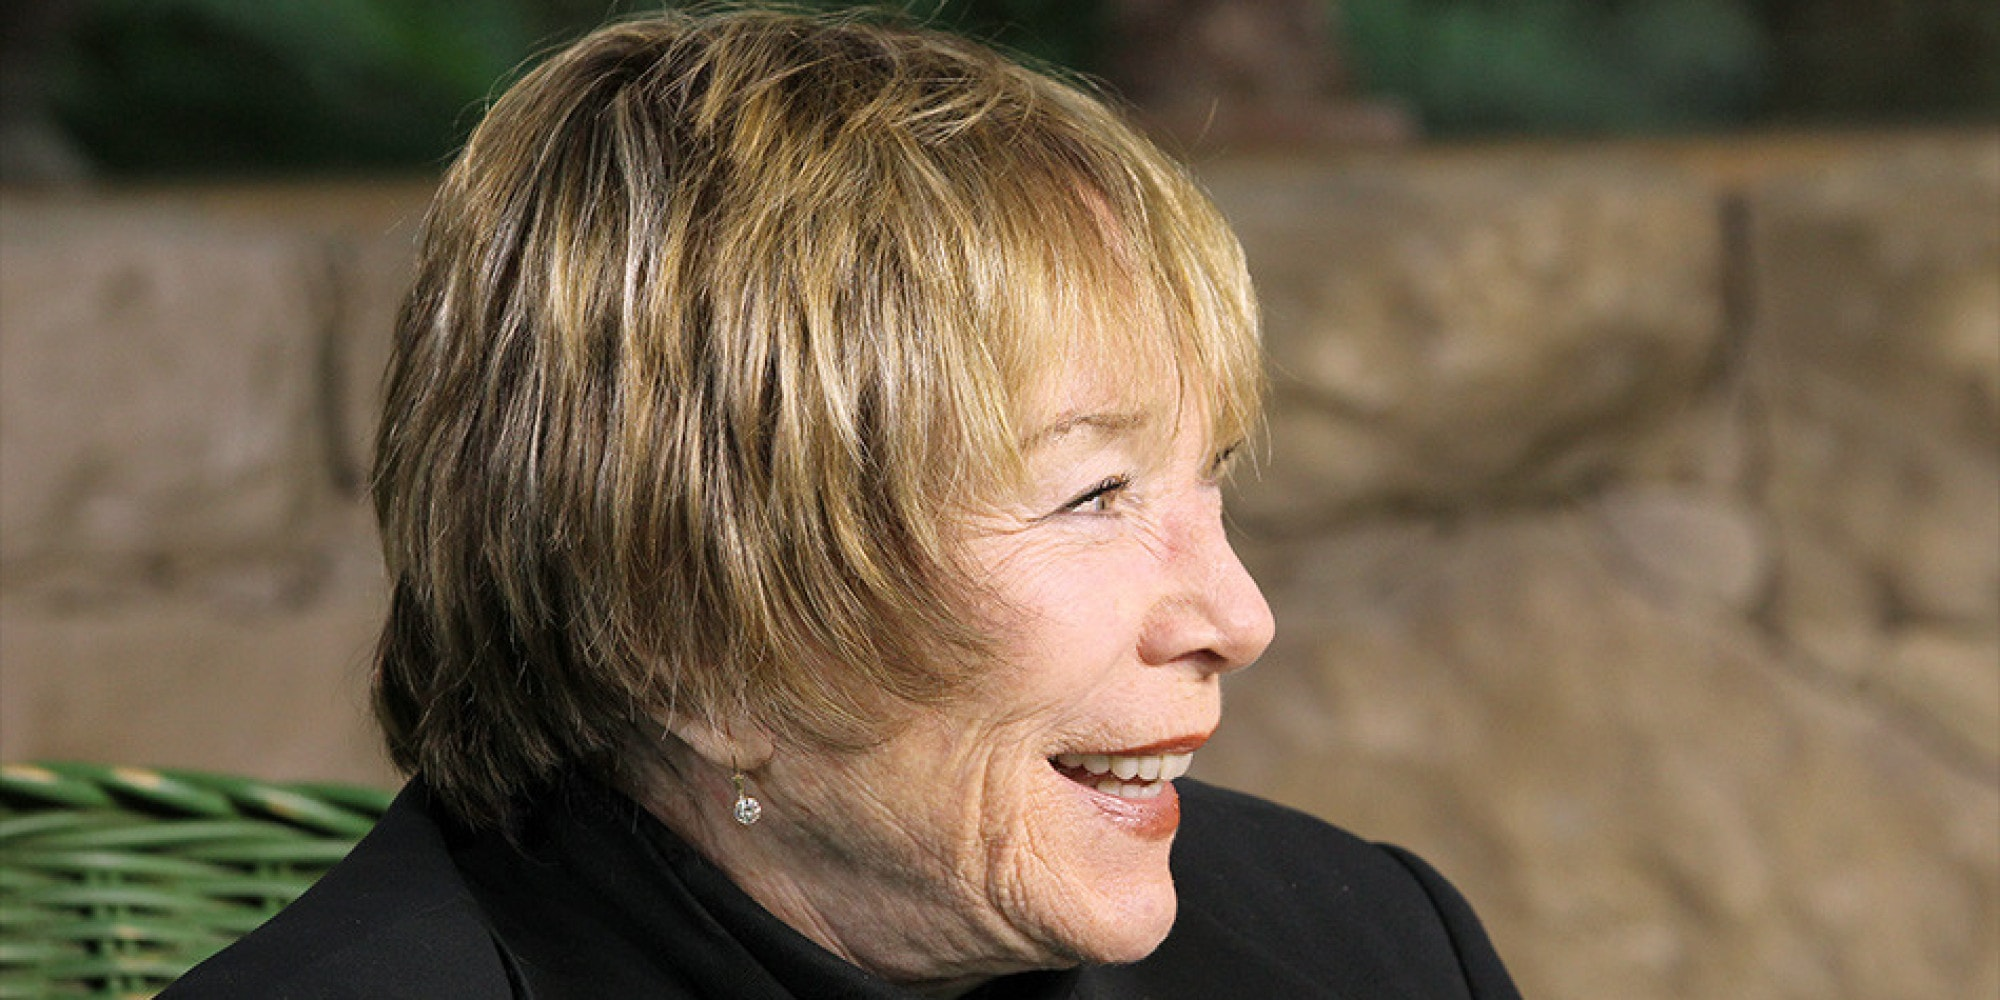 Shirley MacLaine Widescreen for desktop